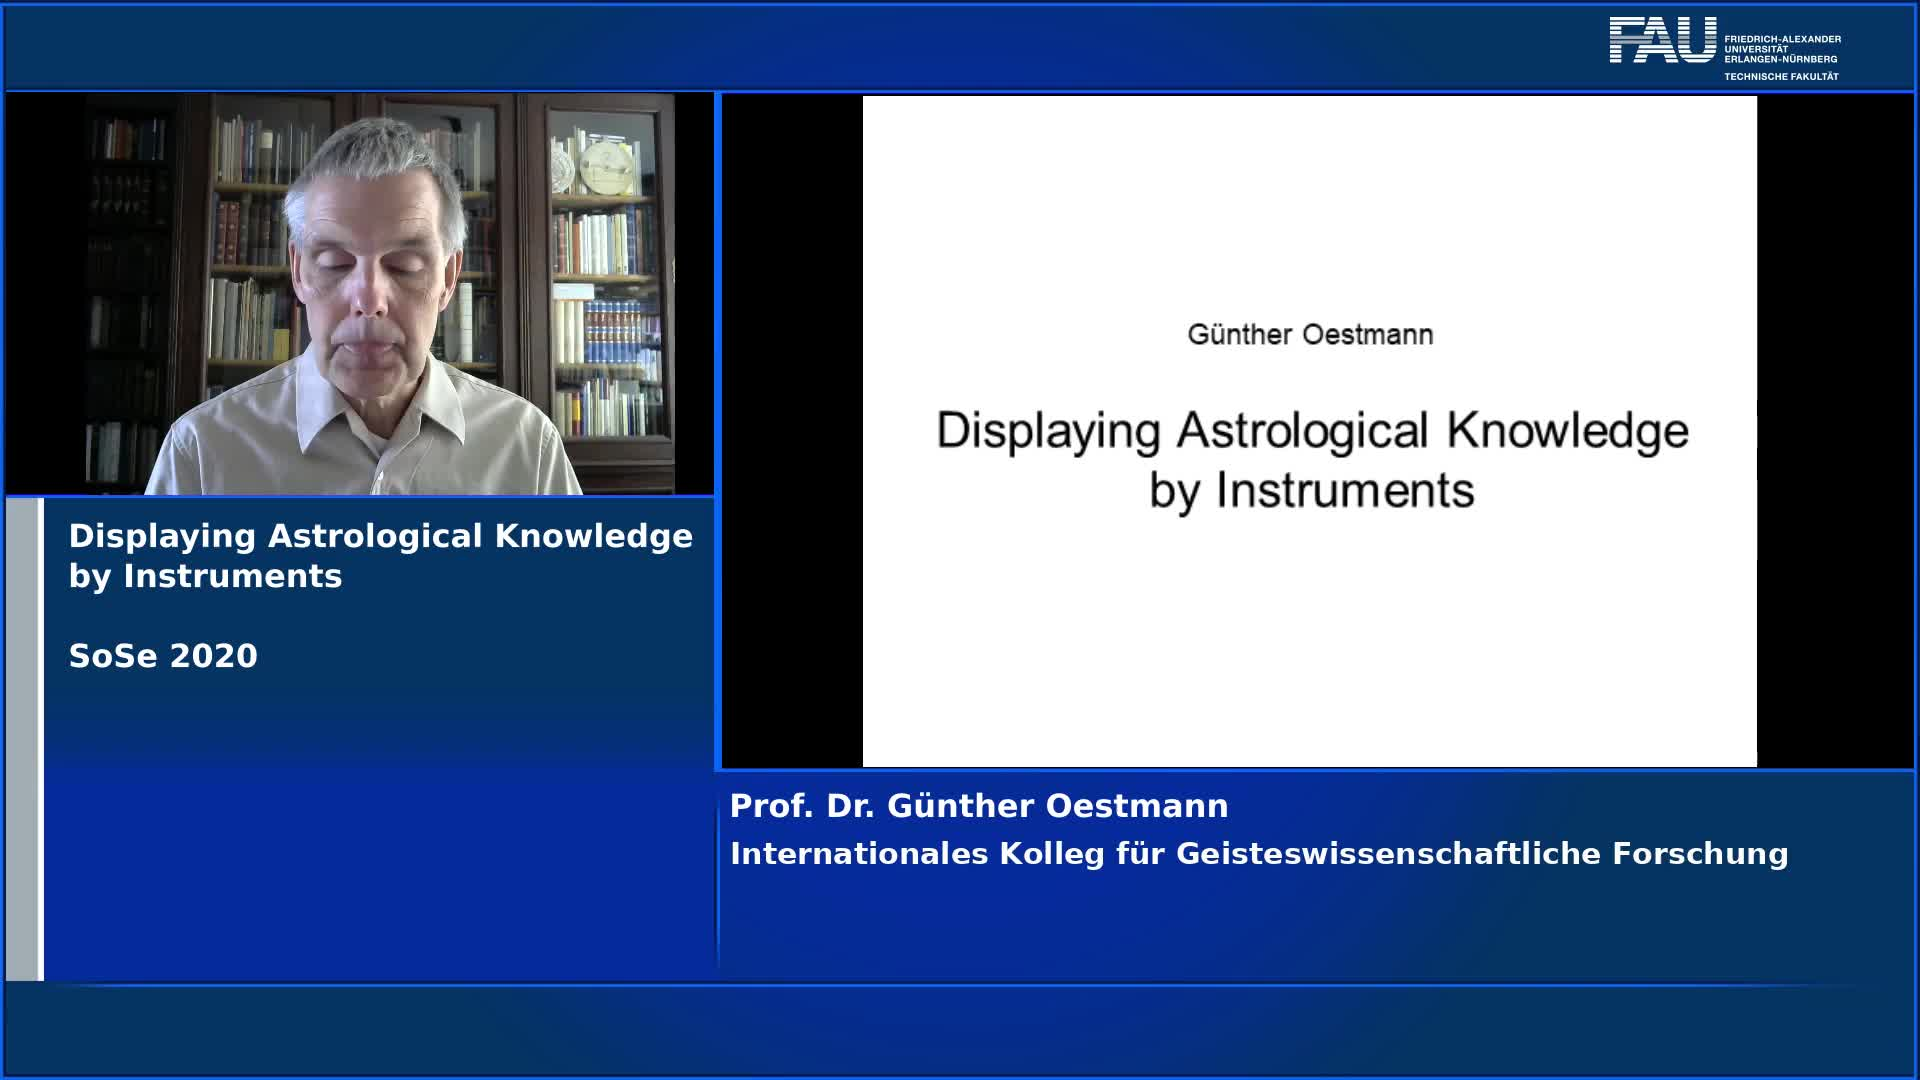 Displaying Astrological Knowledge by Instruments preview image